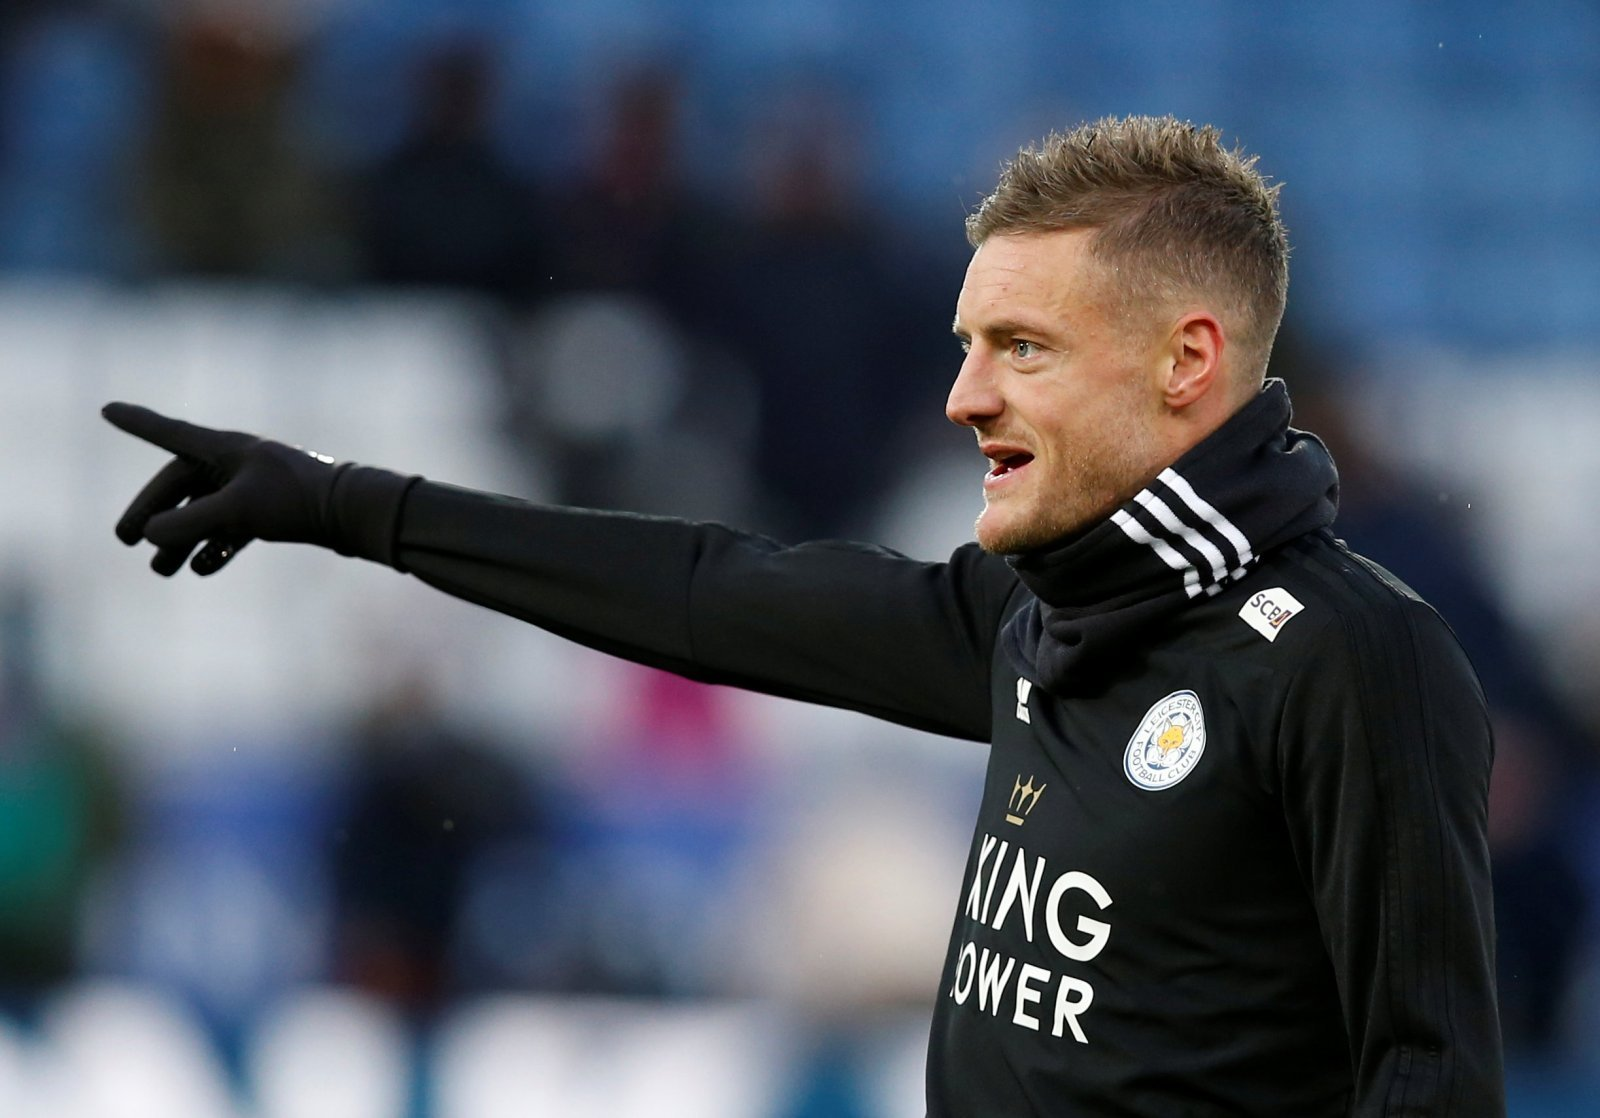 Leicester City: Many fans think Jamie Vardy is not worthy of award